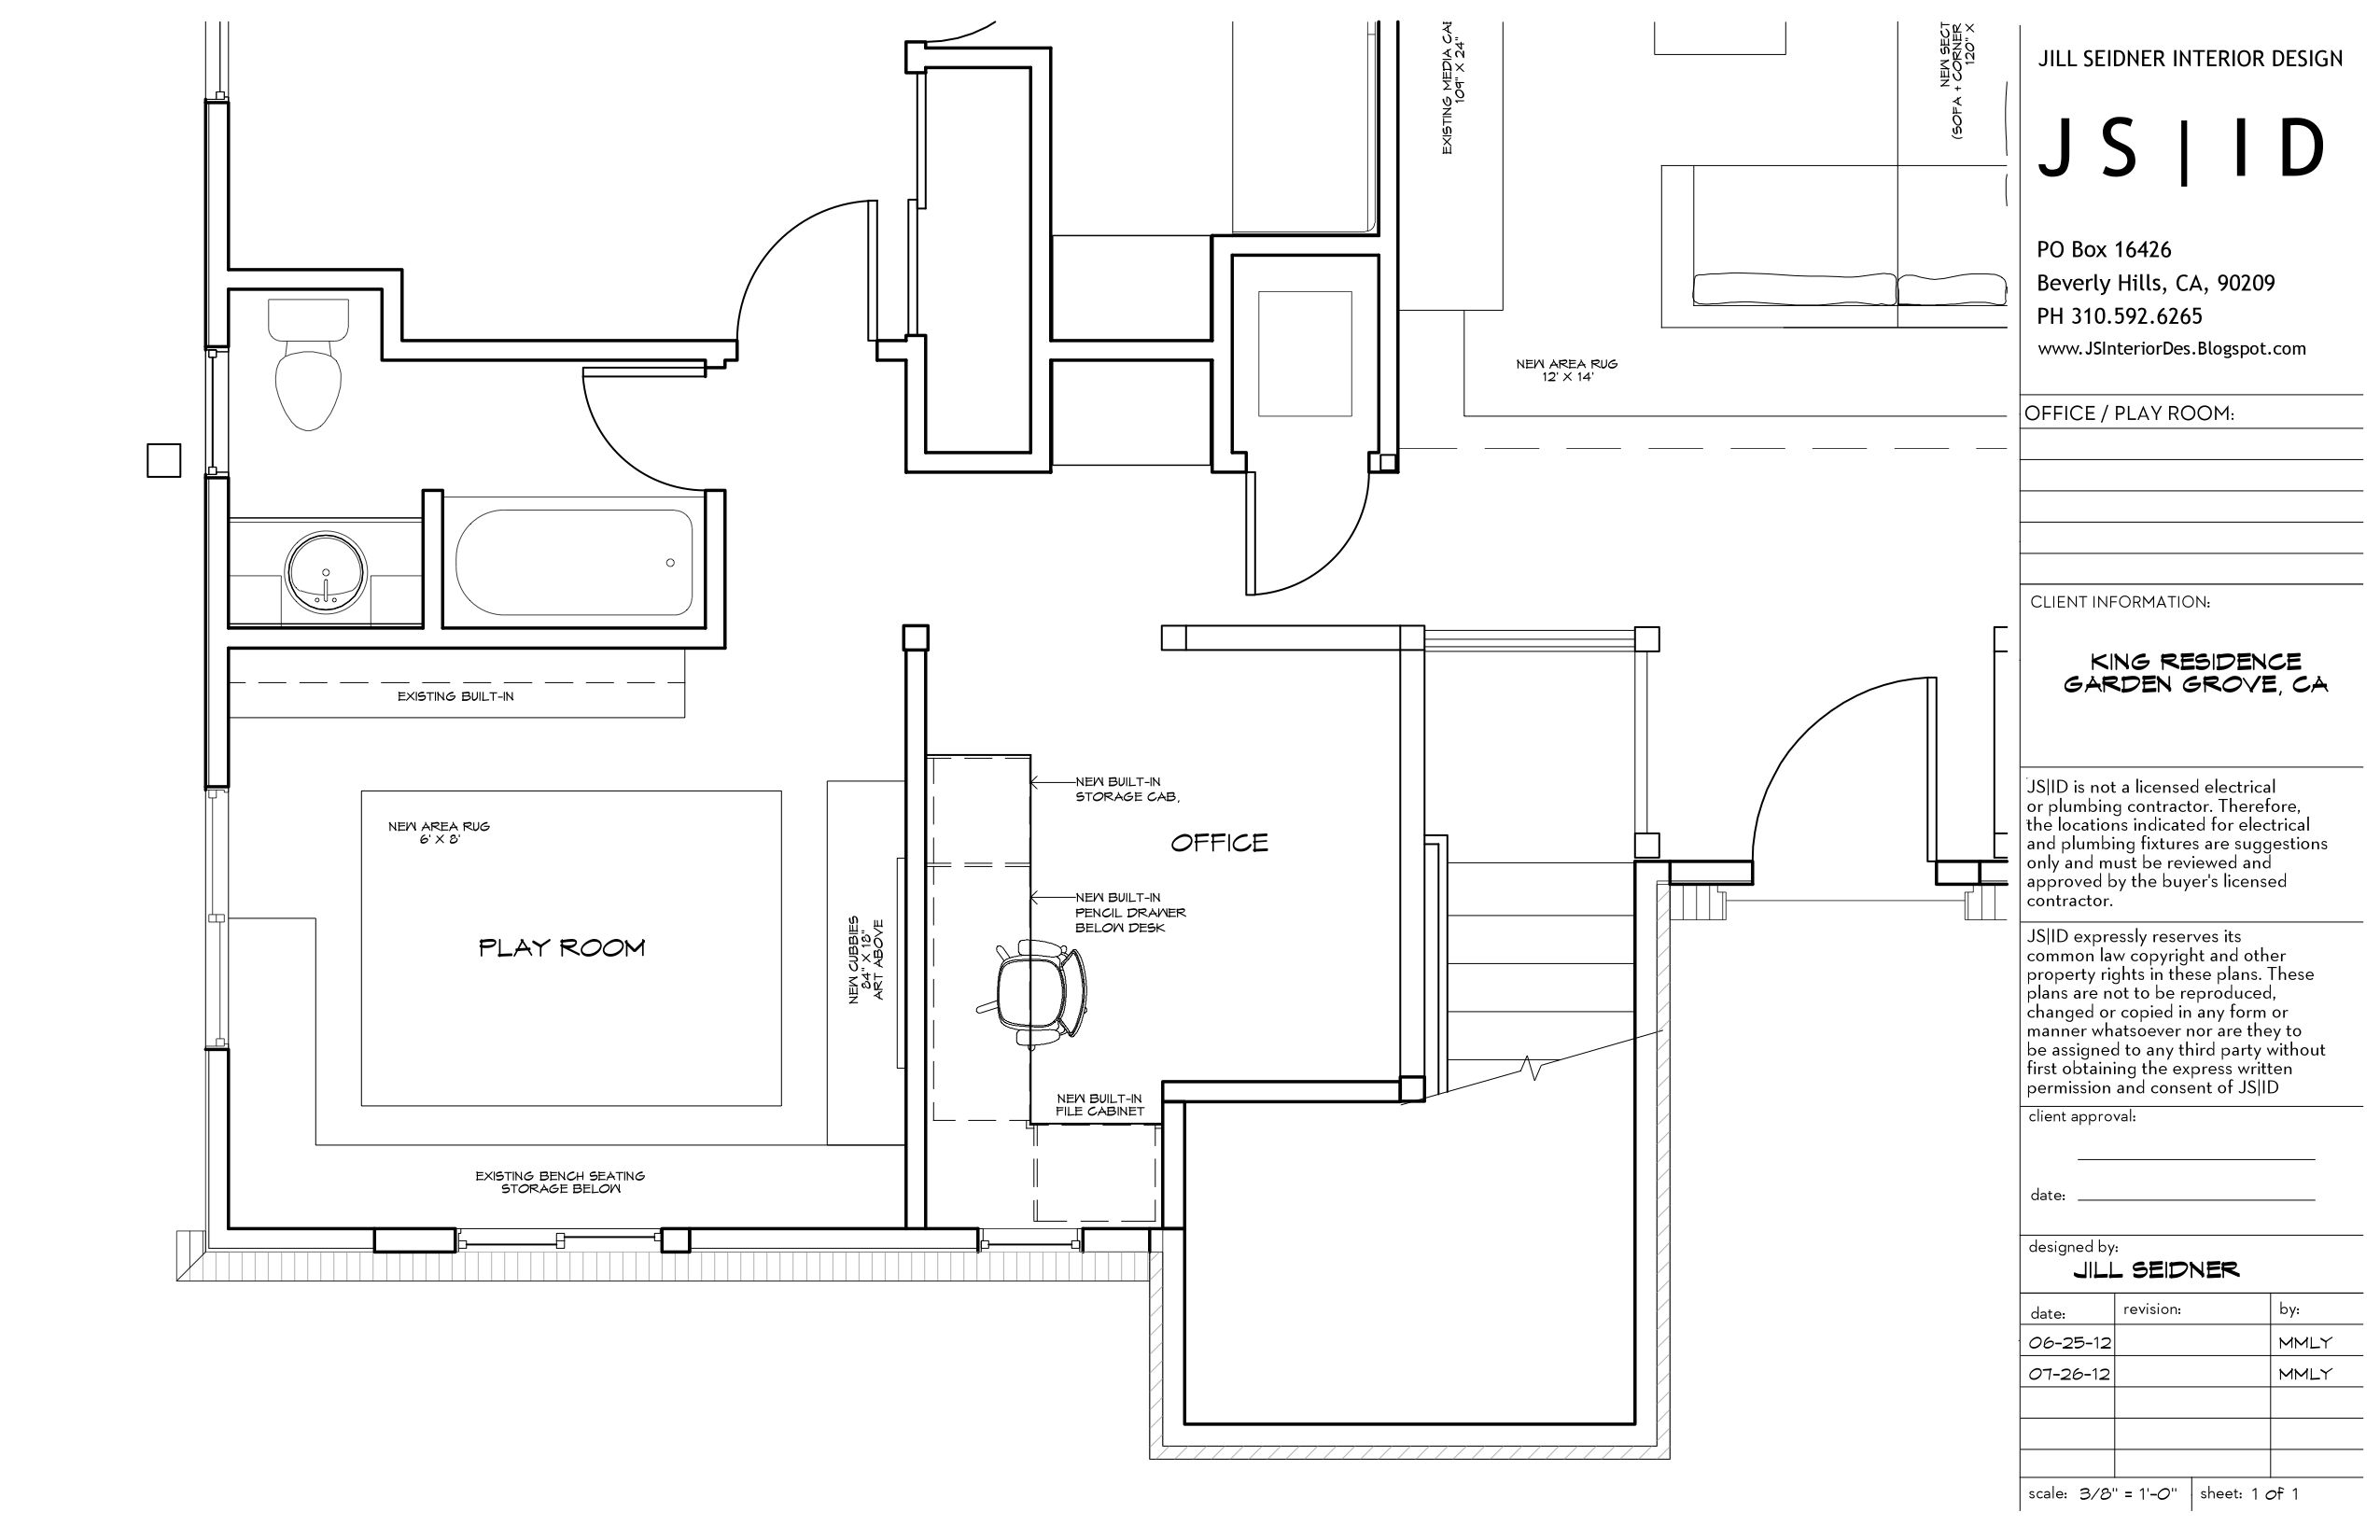 Pin on Jill Seidner Interior Design Drawings